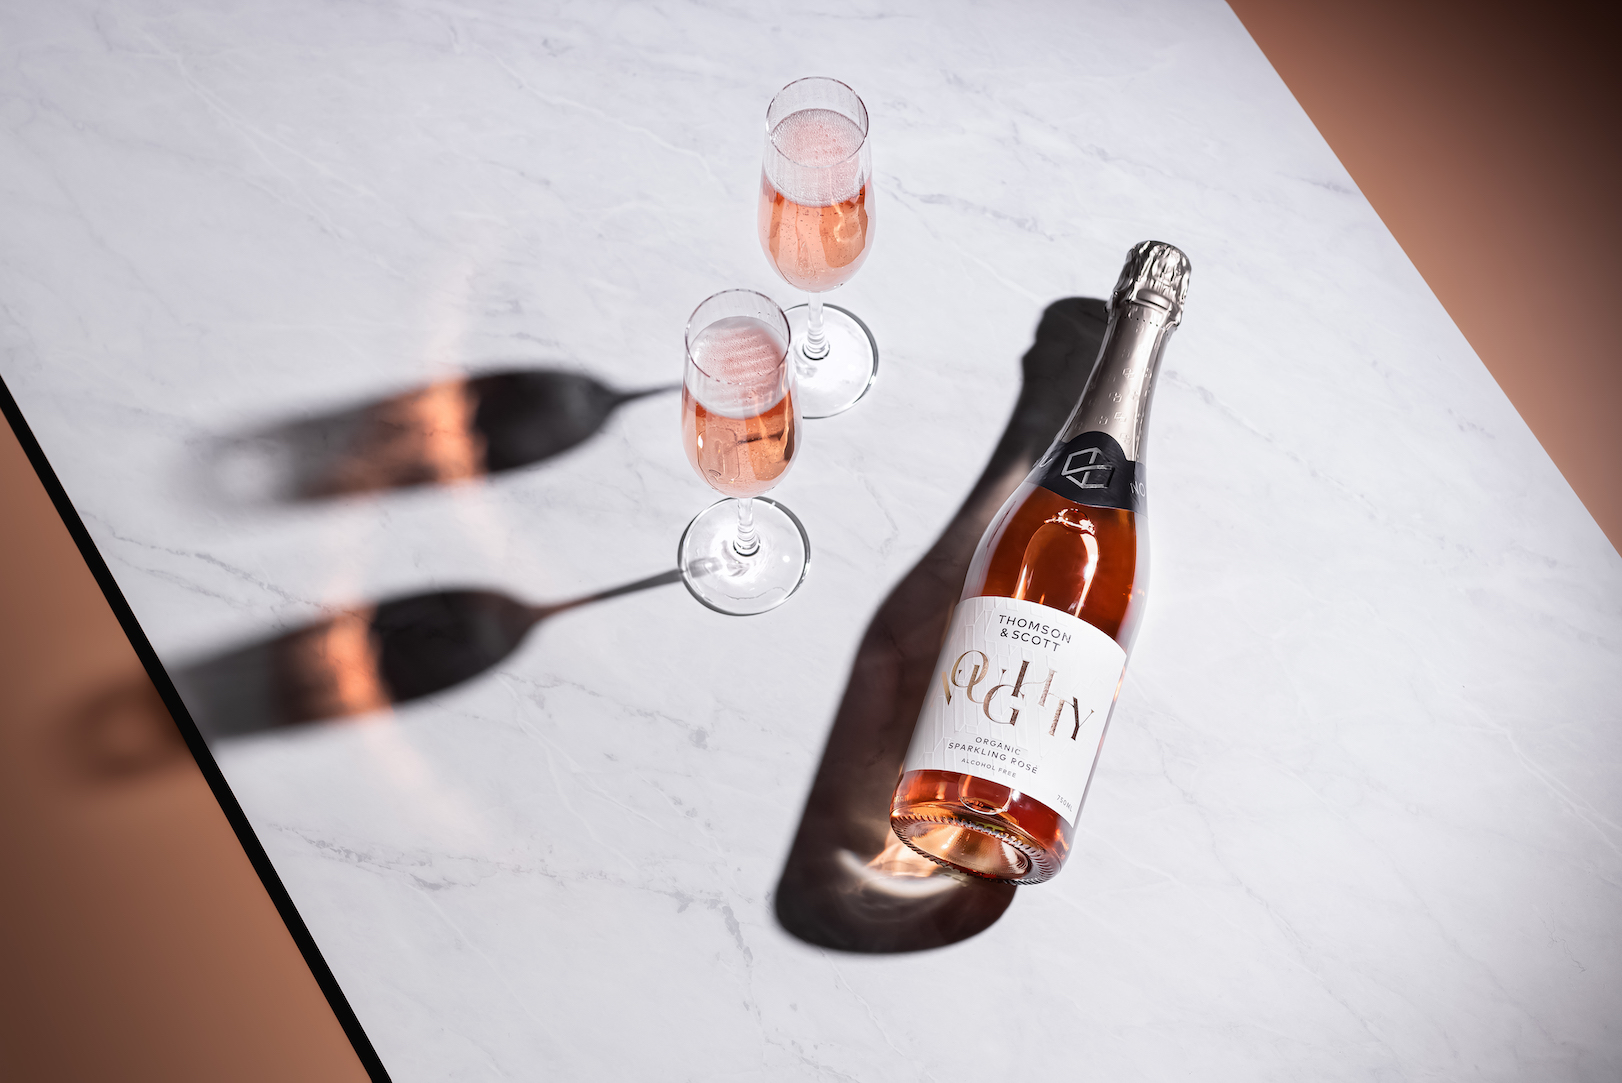 Big Hospitality has included Noughty in its essential lineup of alcohol-free options for those looking to drink but without the dreaded hangover.